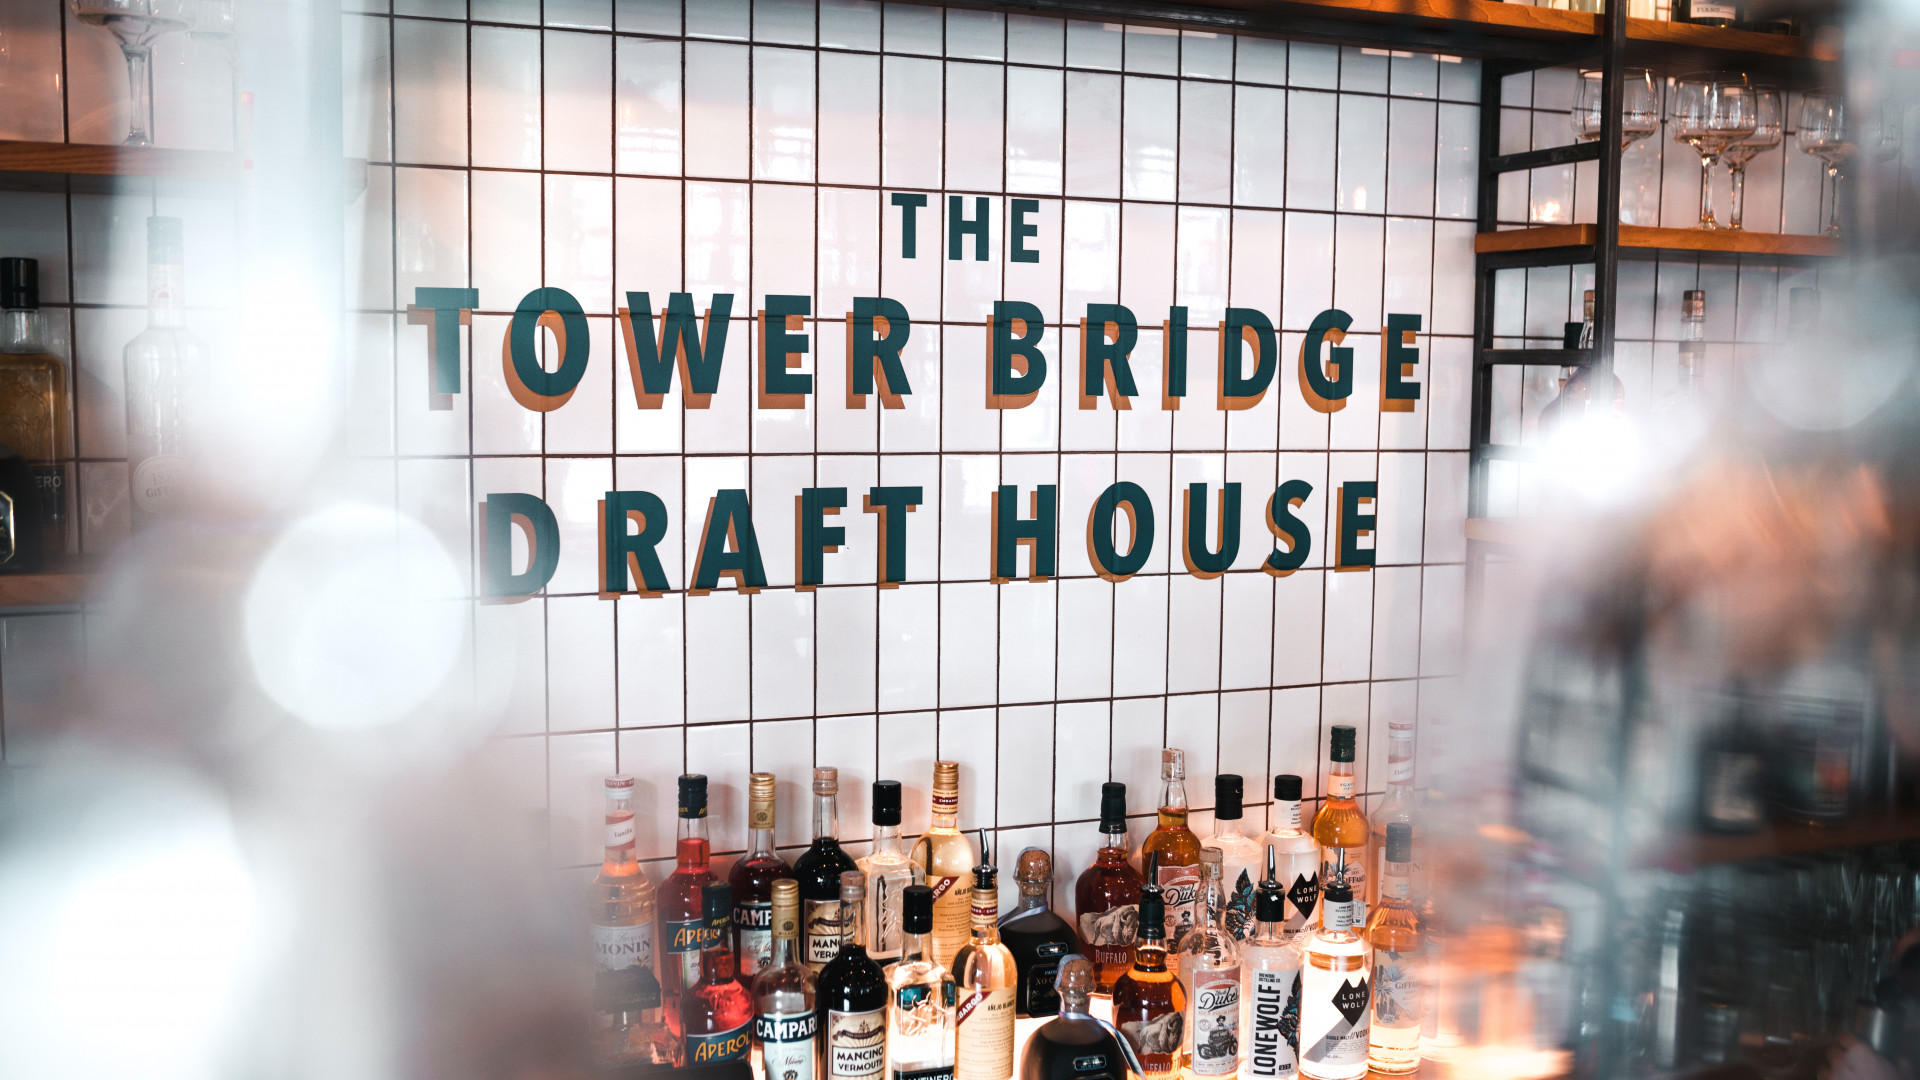 The Draft House Tower Bridge